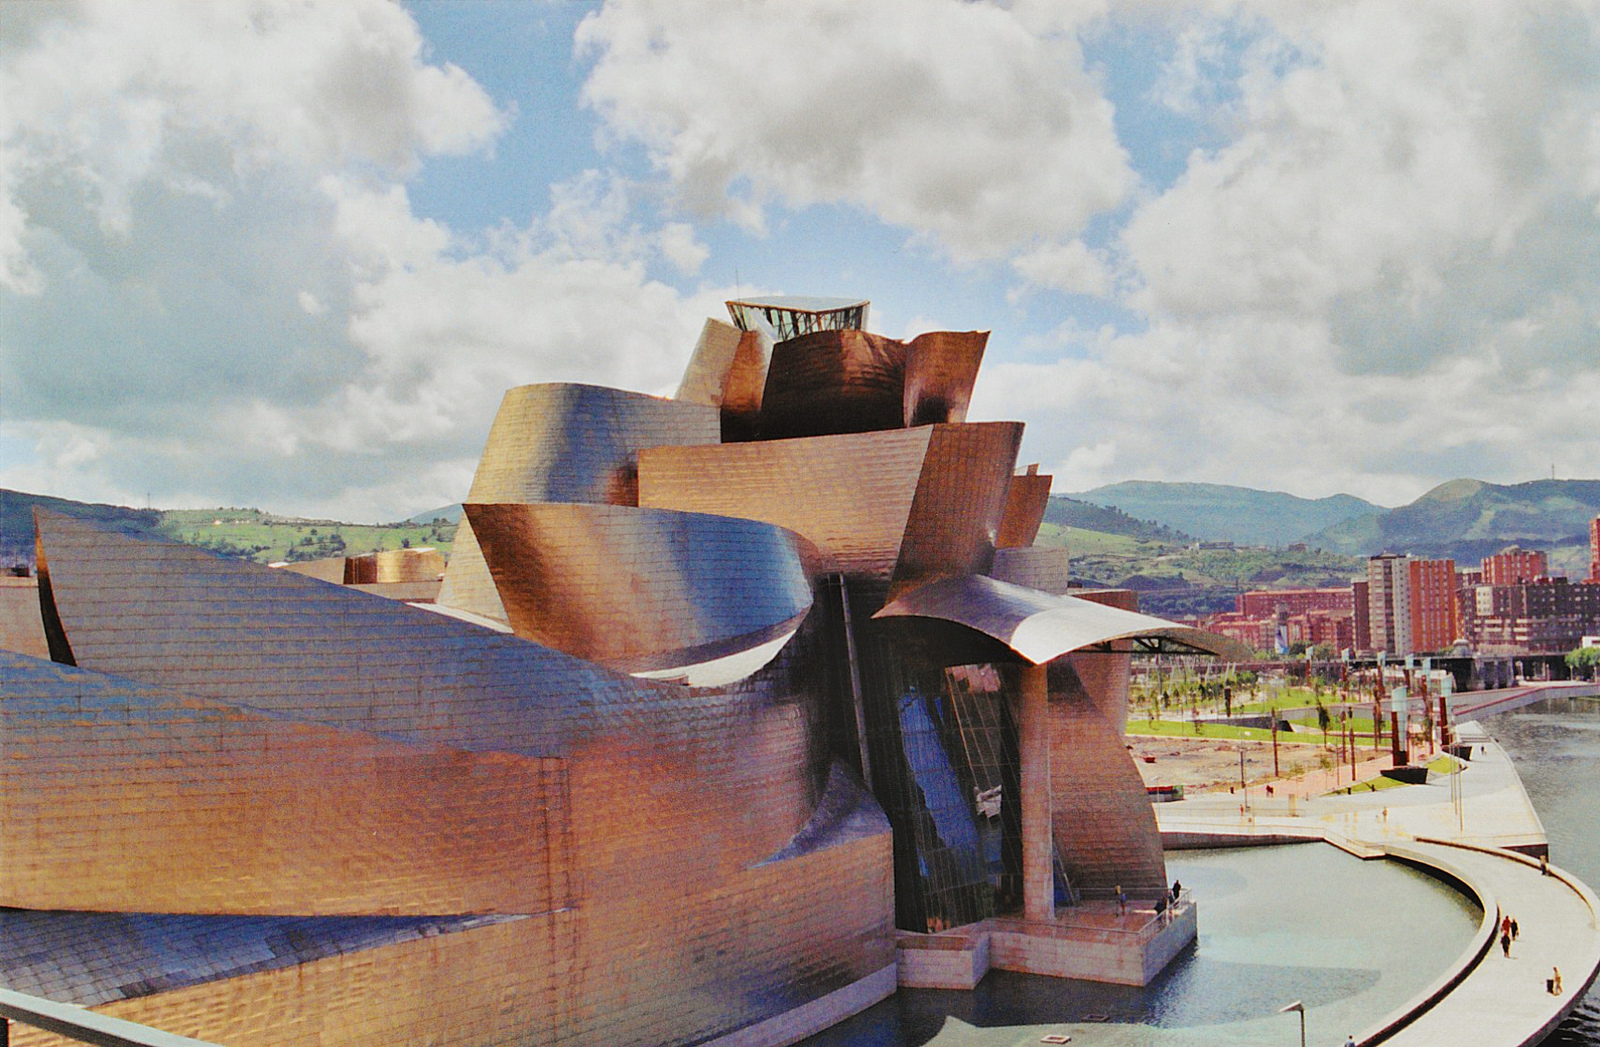 The Guggenheim in Bilbao © SarahTz